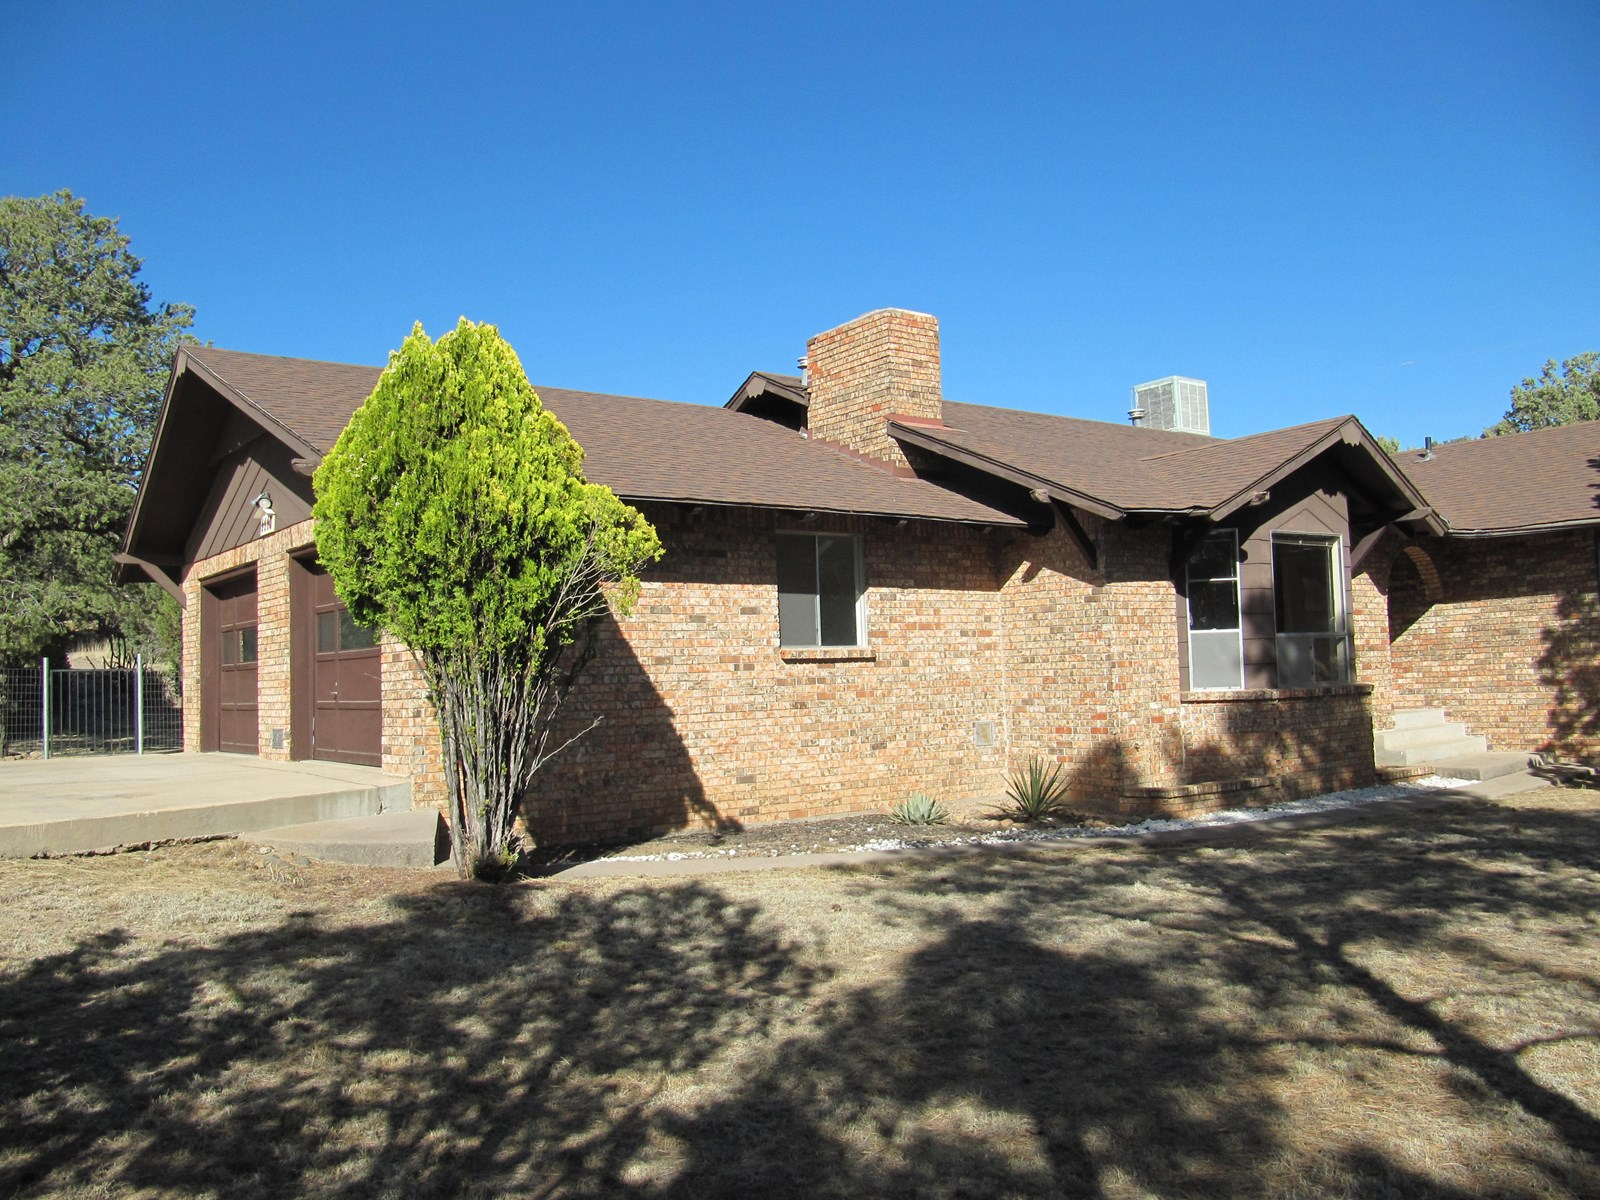 SPACIOUS SILVER CITY CLASSIC HOME WITH RURAL SETTING